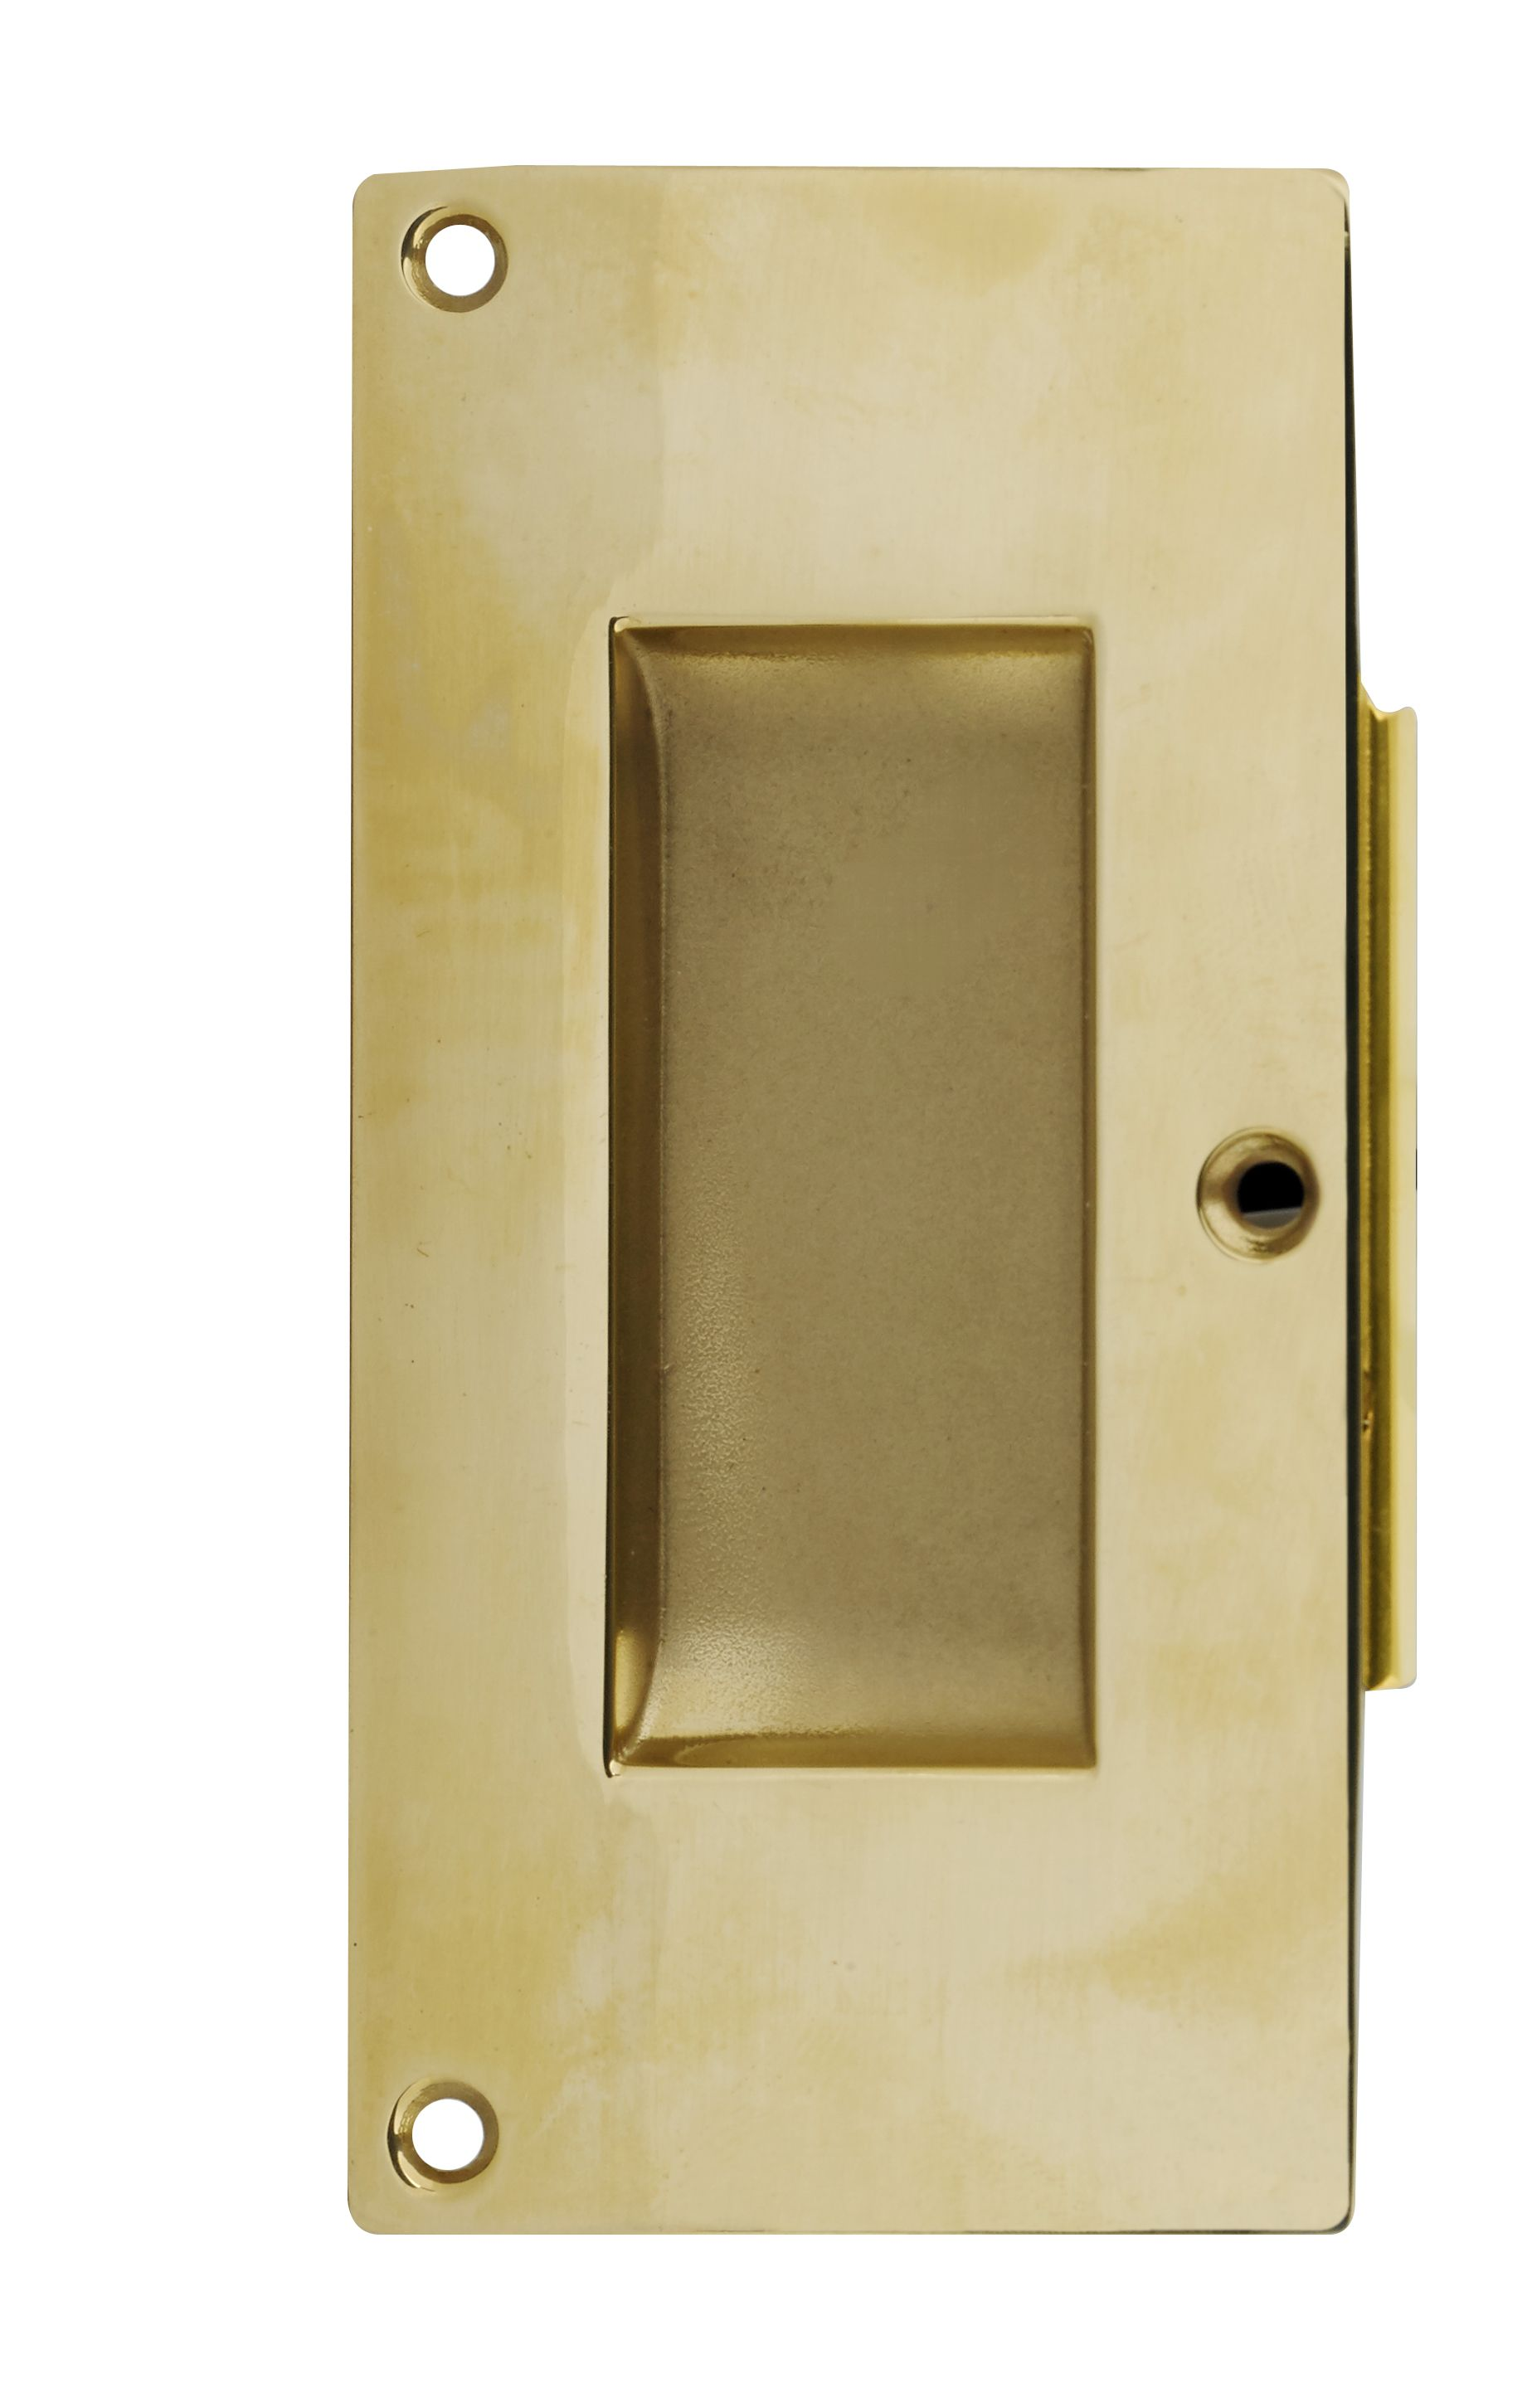 Darby 5 639p Pocket Door Handle Commercial Residential First